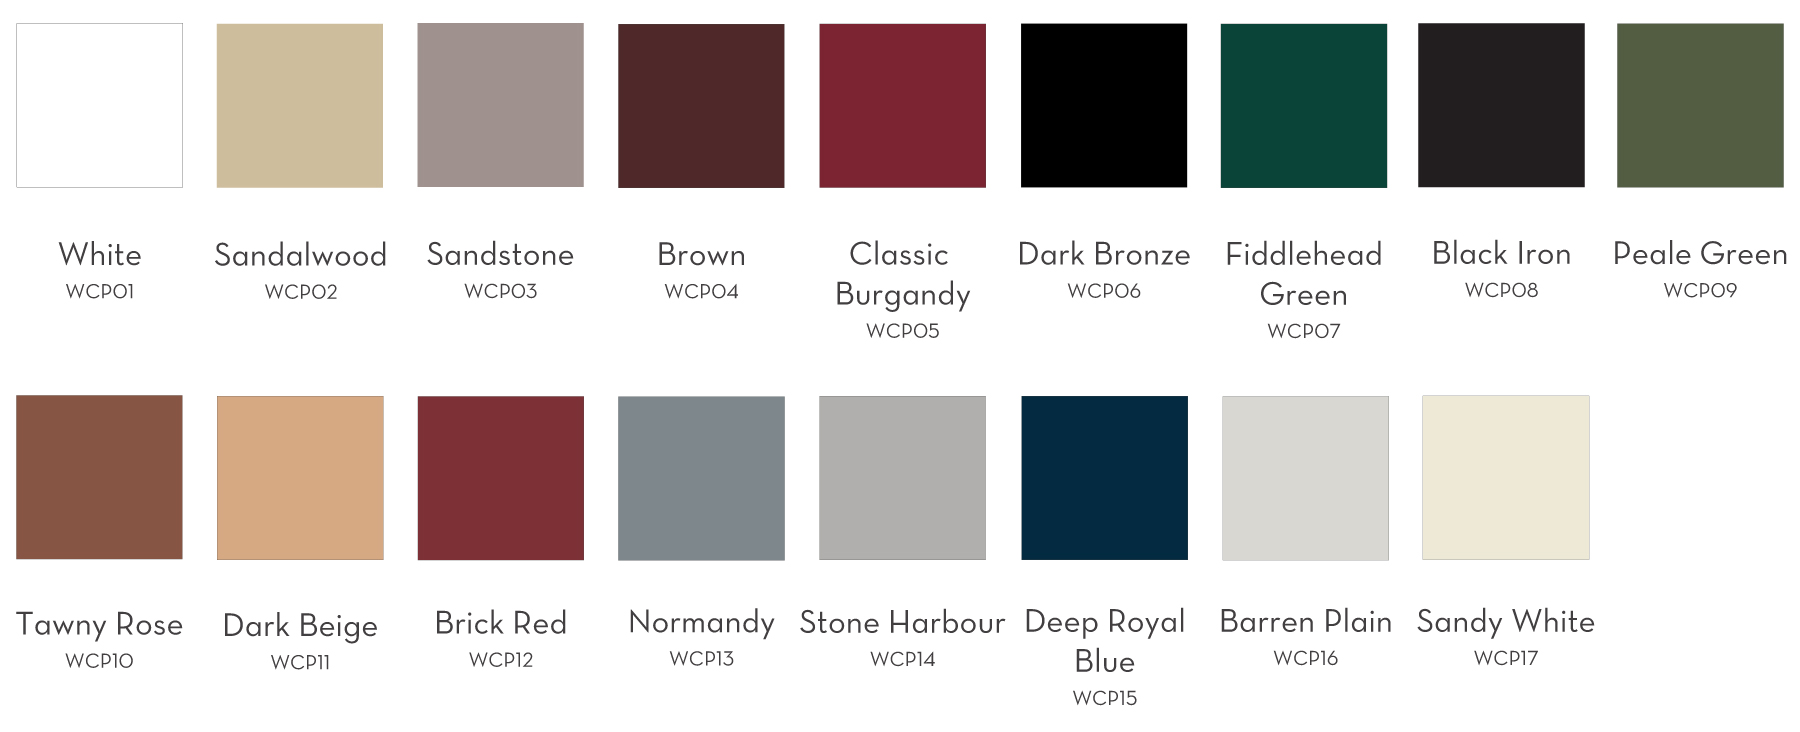 Vinyl Window Color Options